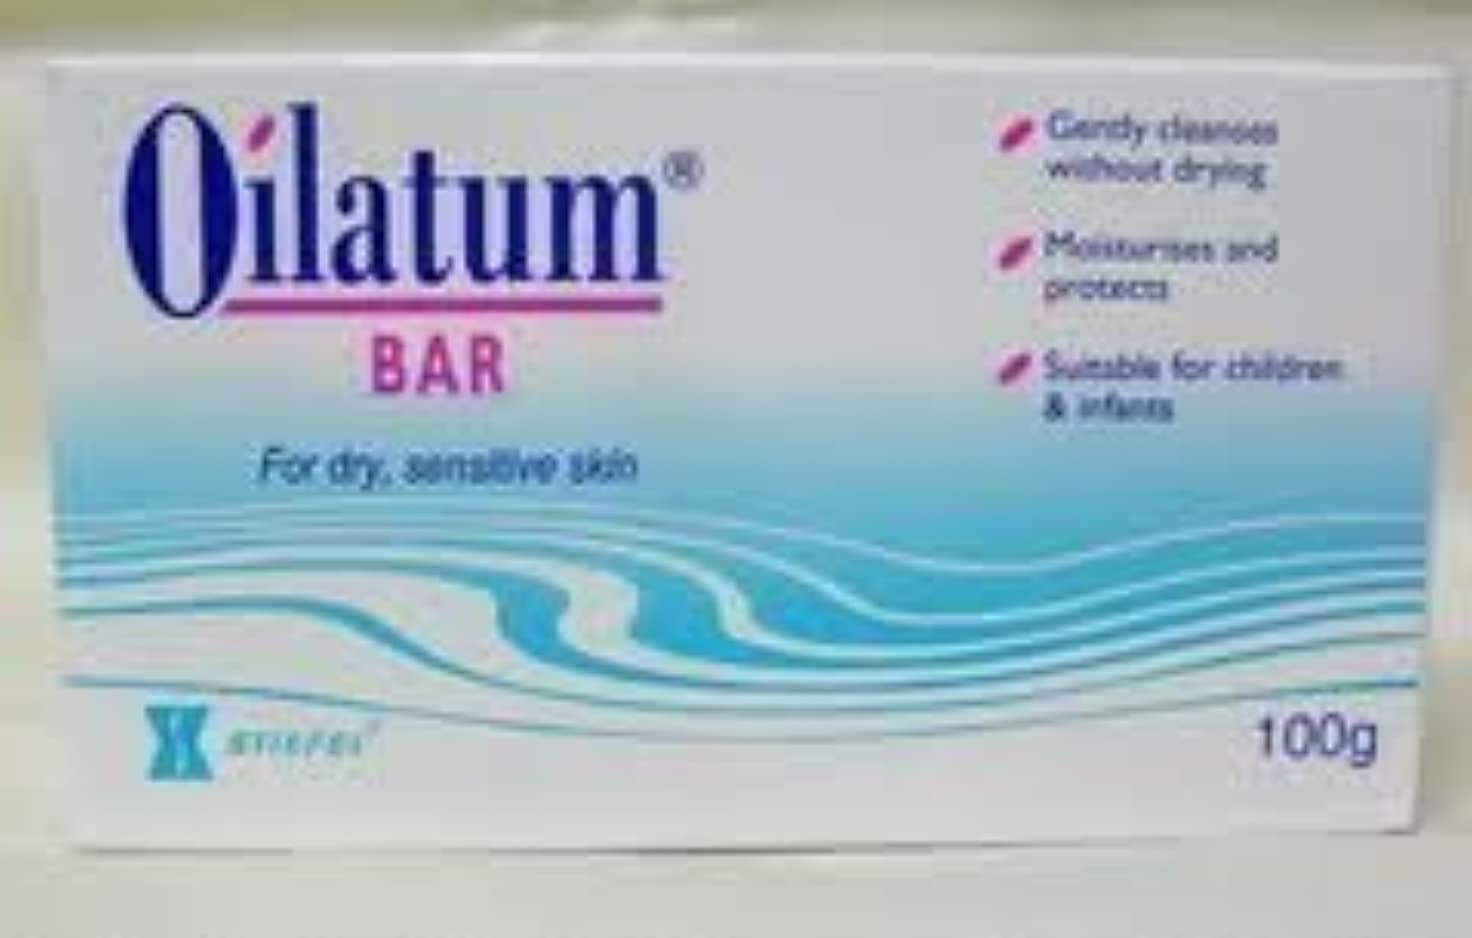 アラバマ確認するカーペット6 packs of Oilatum Bar Soap Low Price Free Shipping 100g by Oilatum